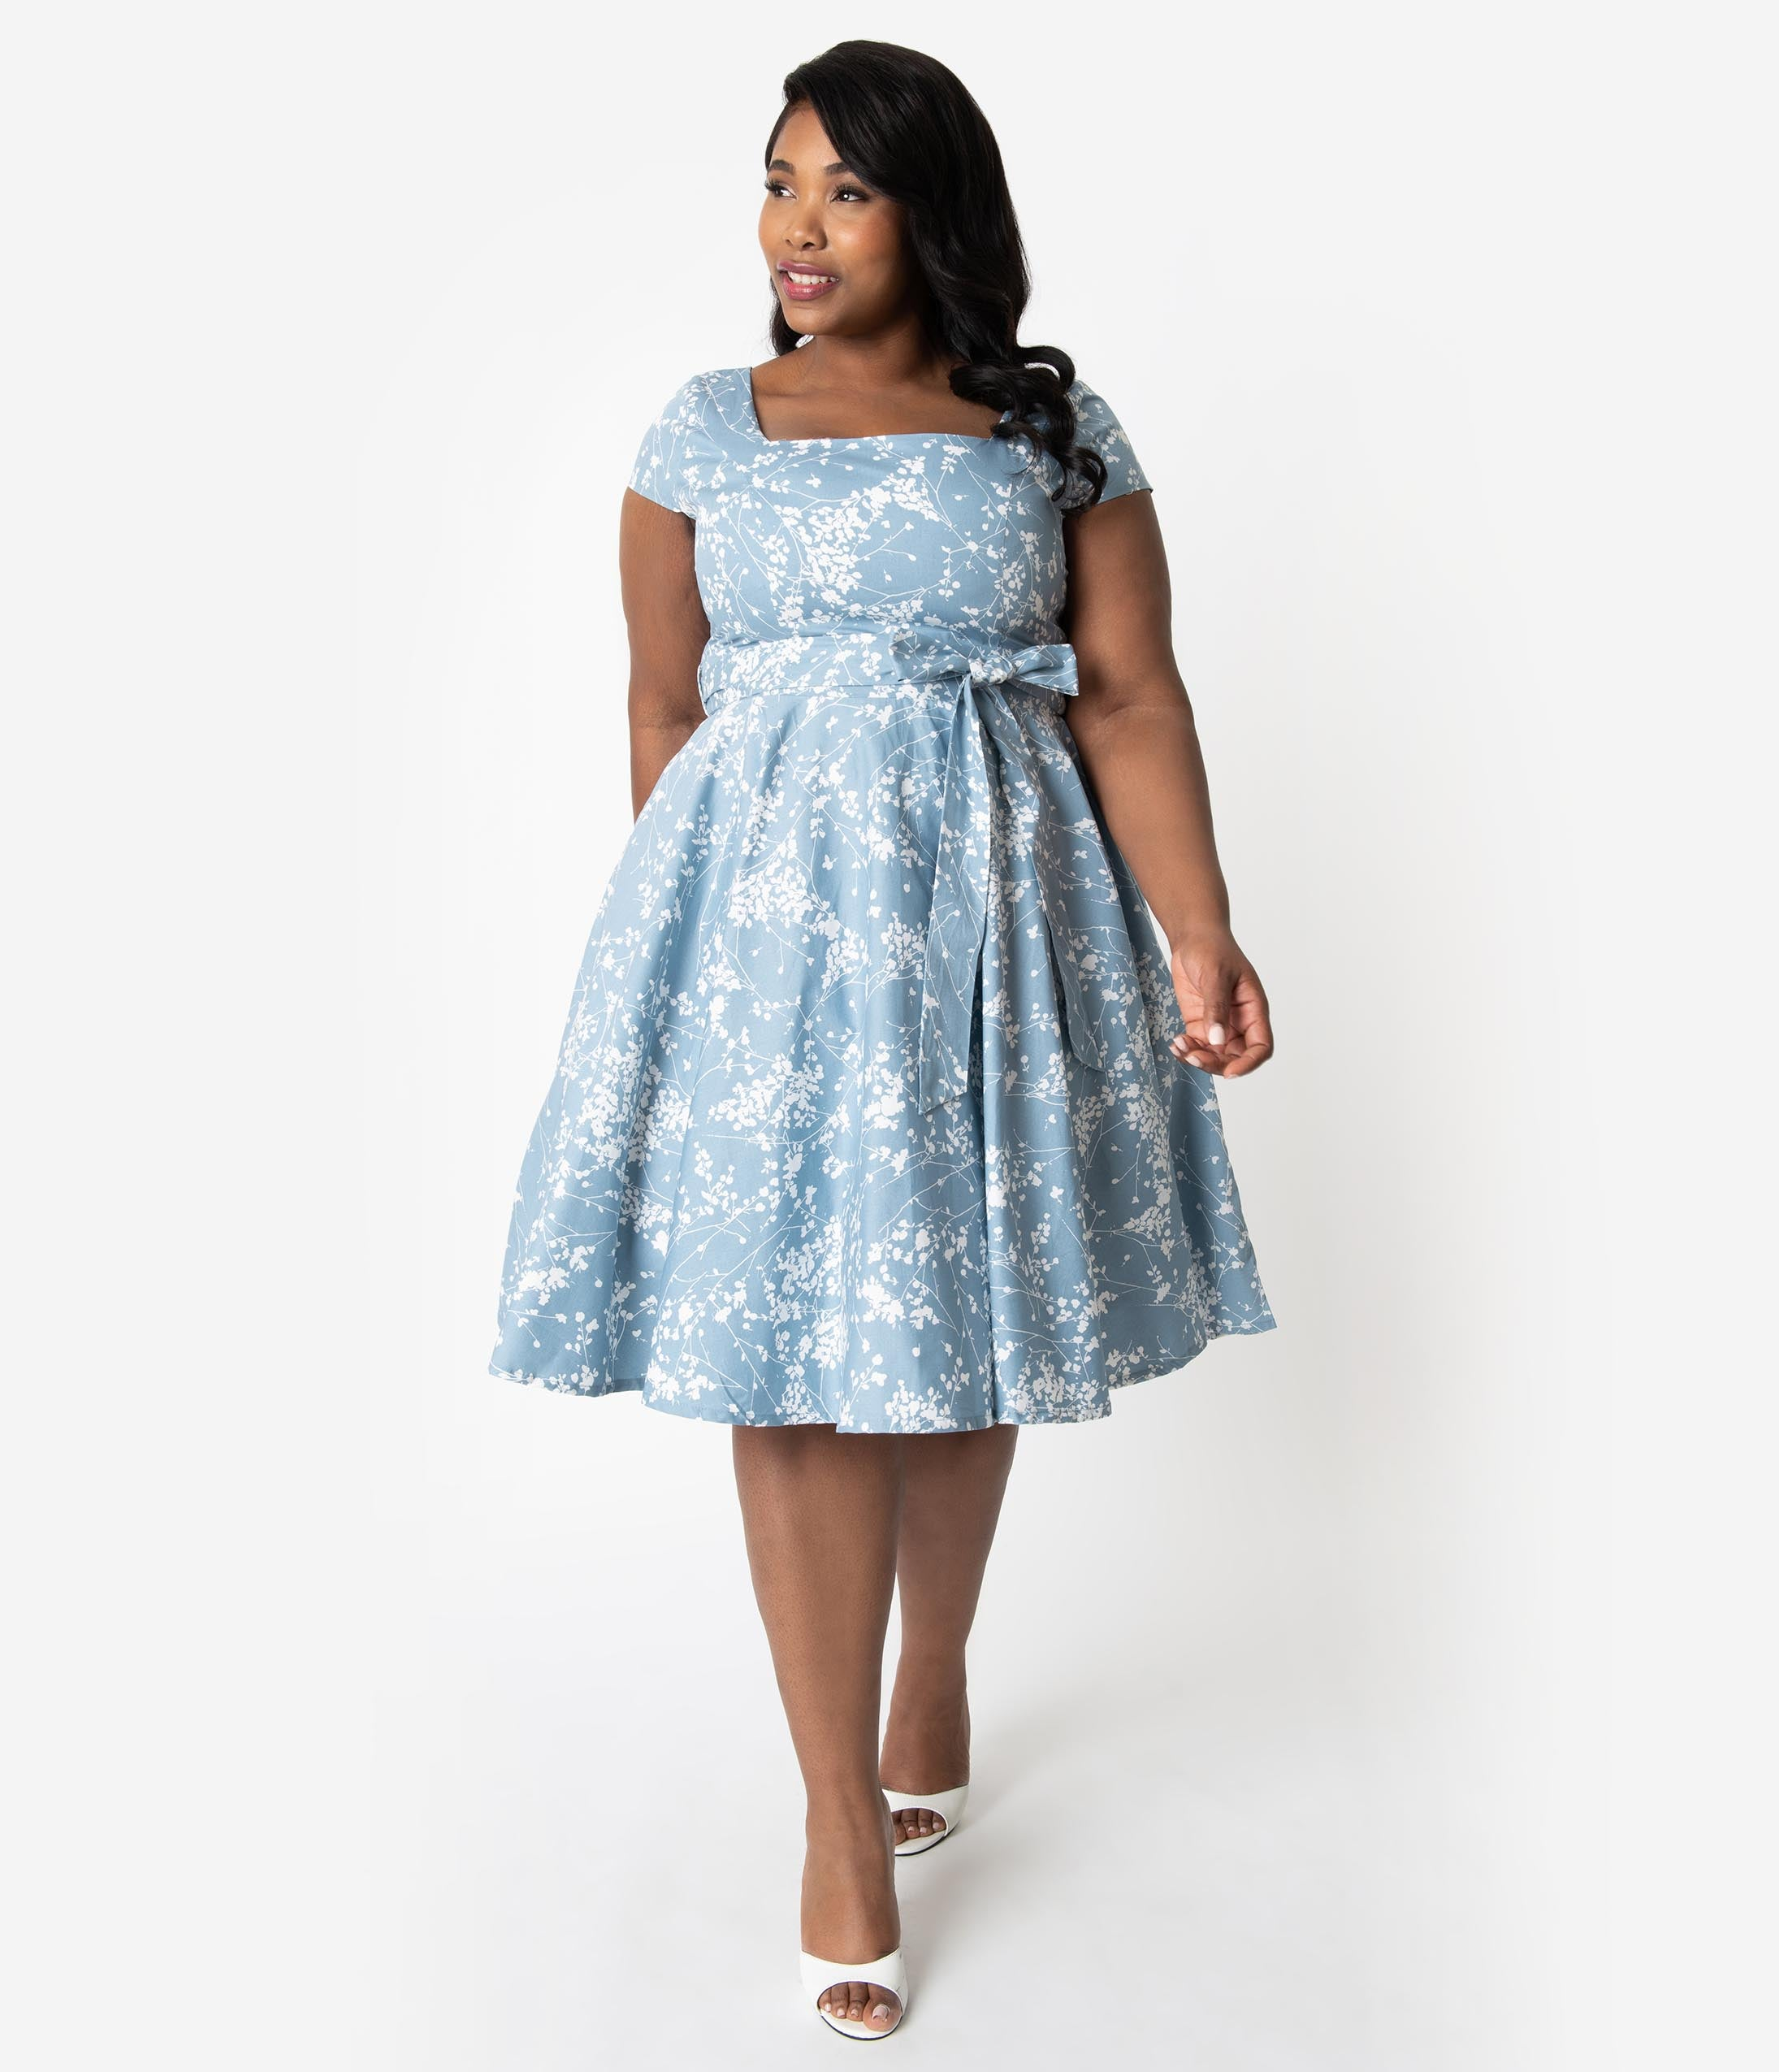 50s Costumes | 50s Halloween Costumes Plus Size Retro Style Light Blue  Ivory Dainty Floral Cap Sleeve Anna Swing Dress $51.00 AT vintagedancer.com